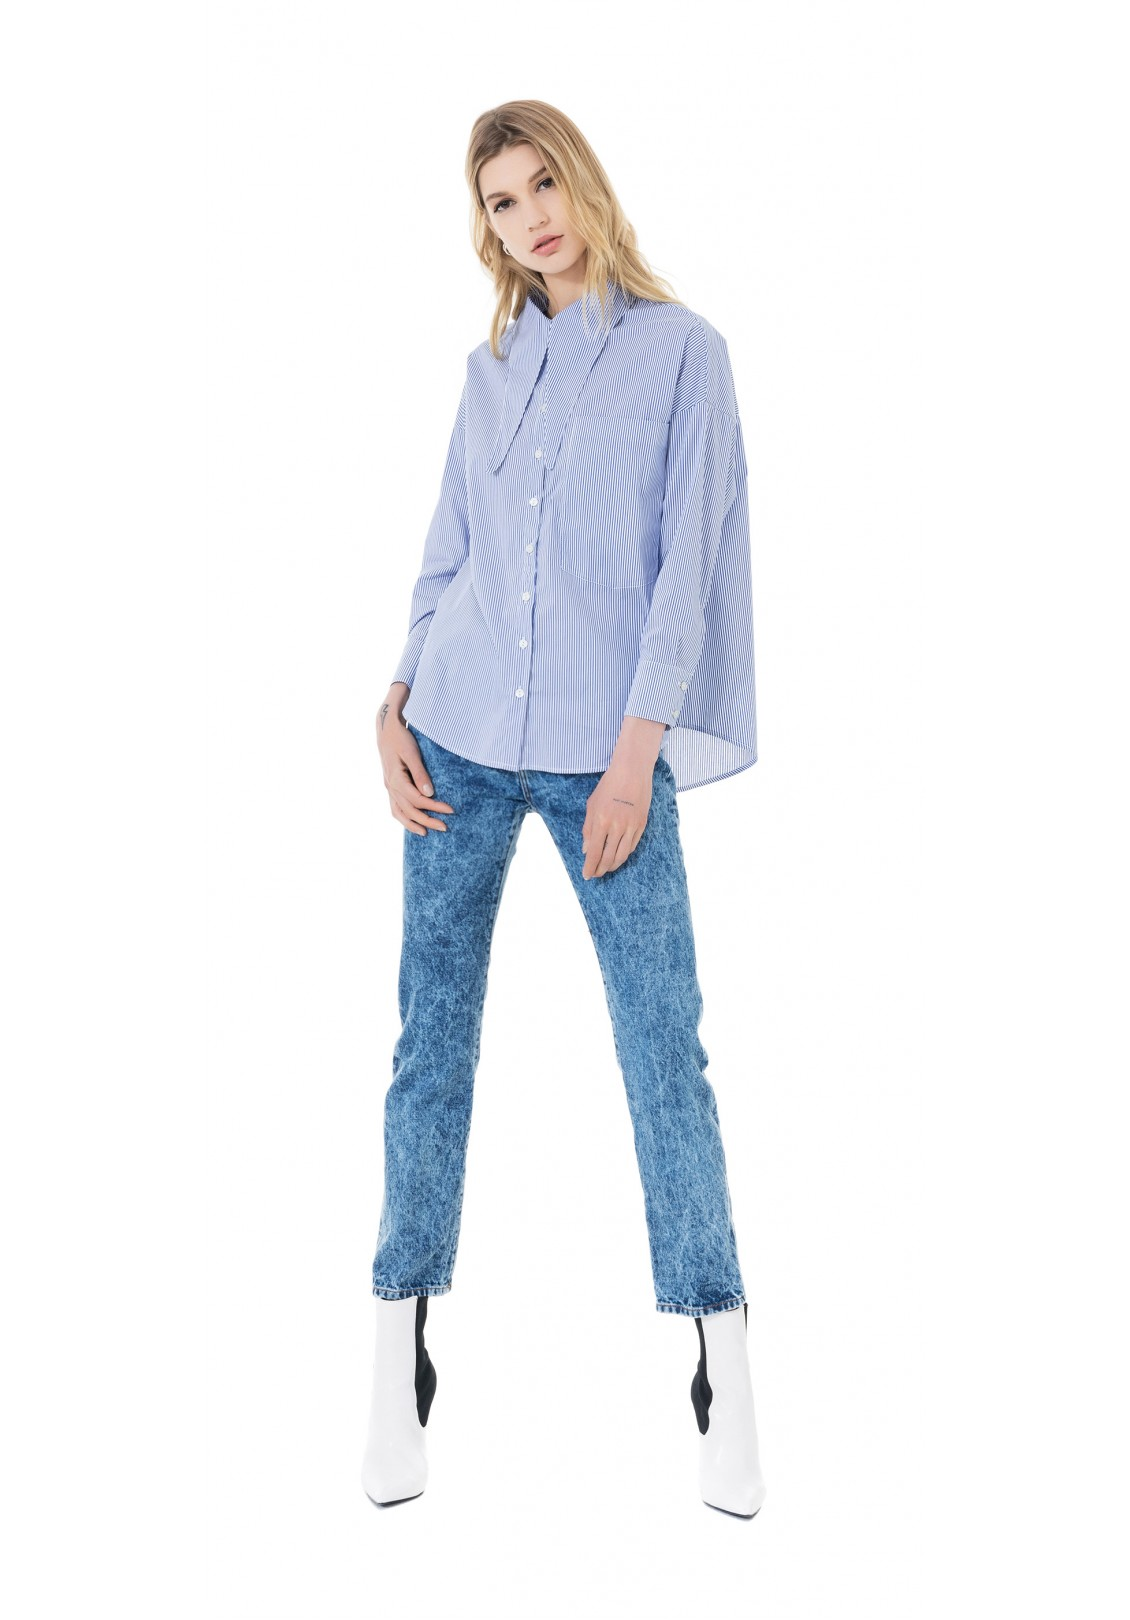 SHIRT - GBD5252 - GAELLE PARIS